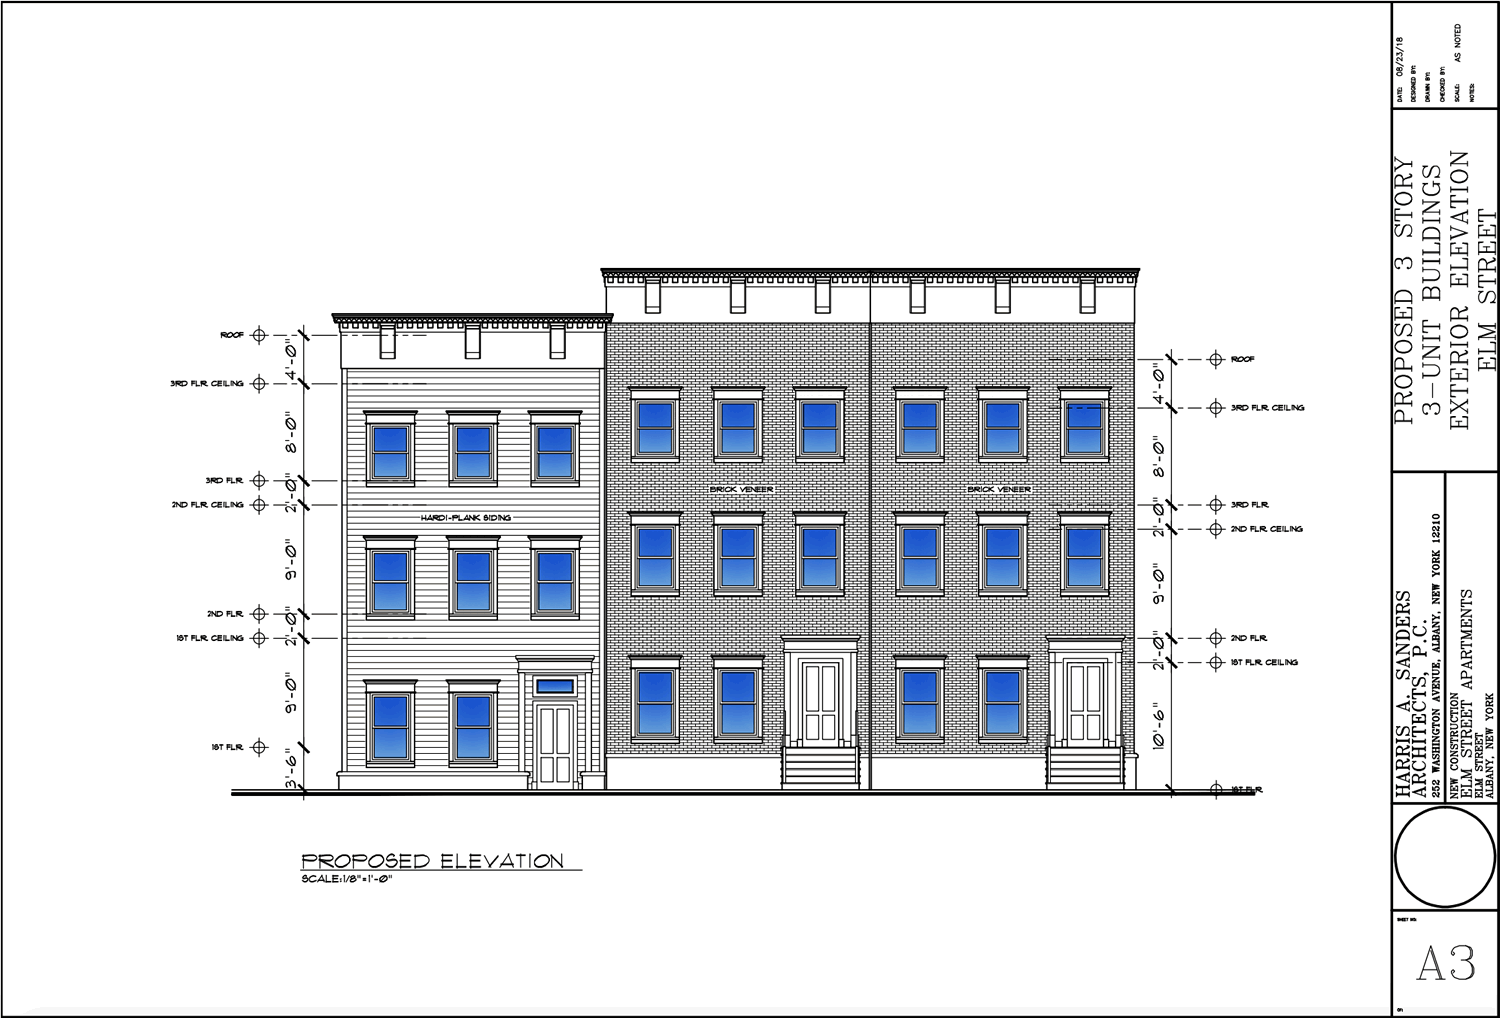 albany planning board 2018-September 185 Elm elevation